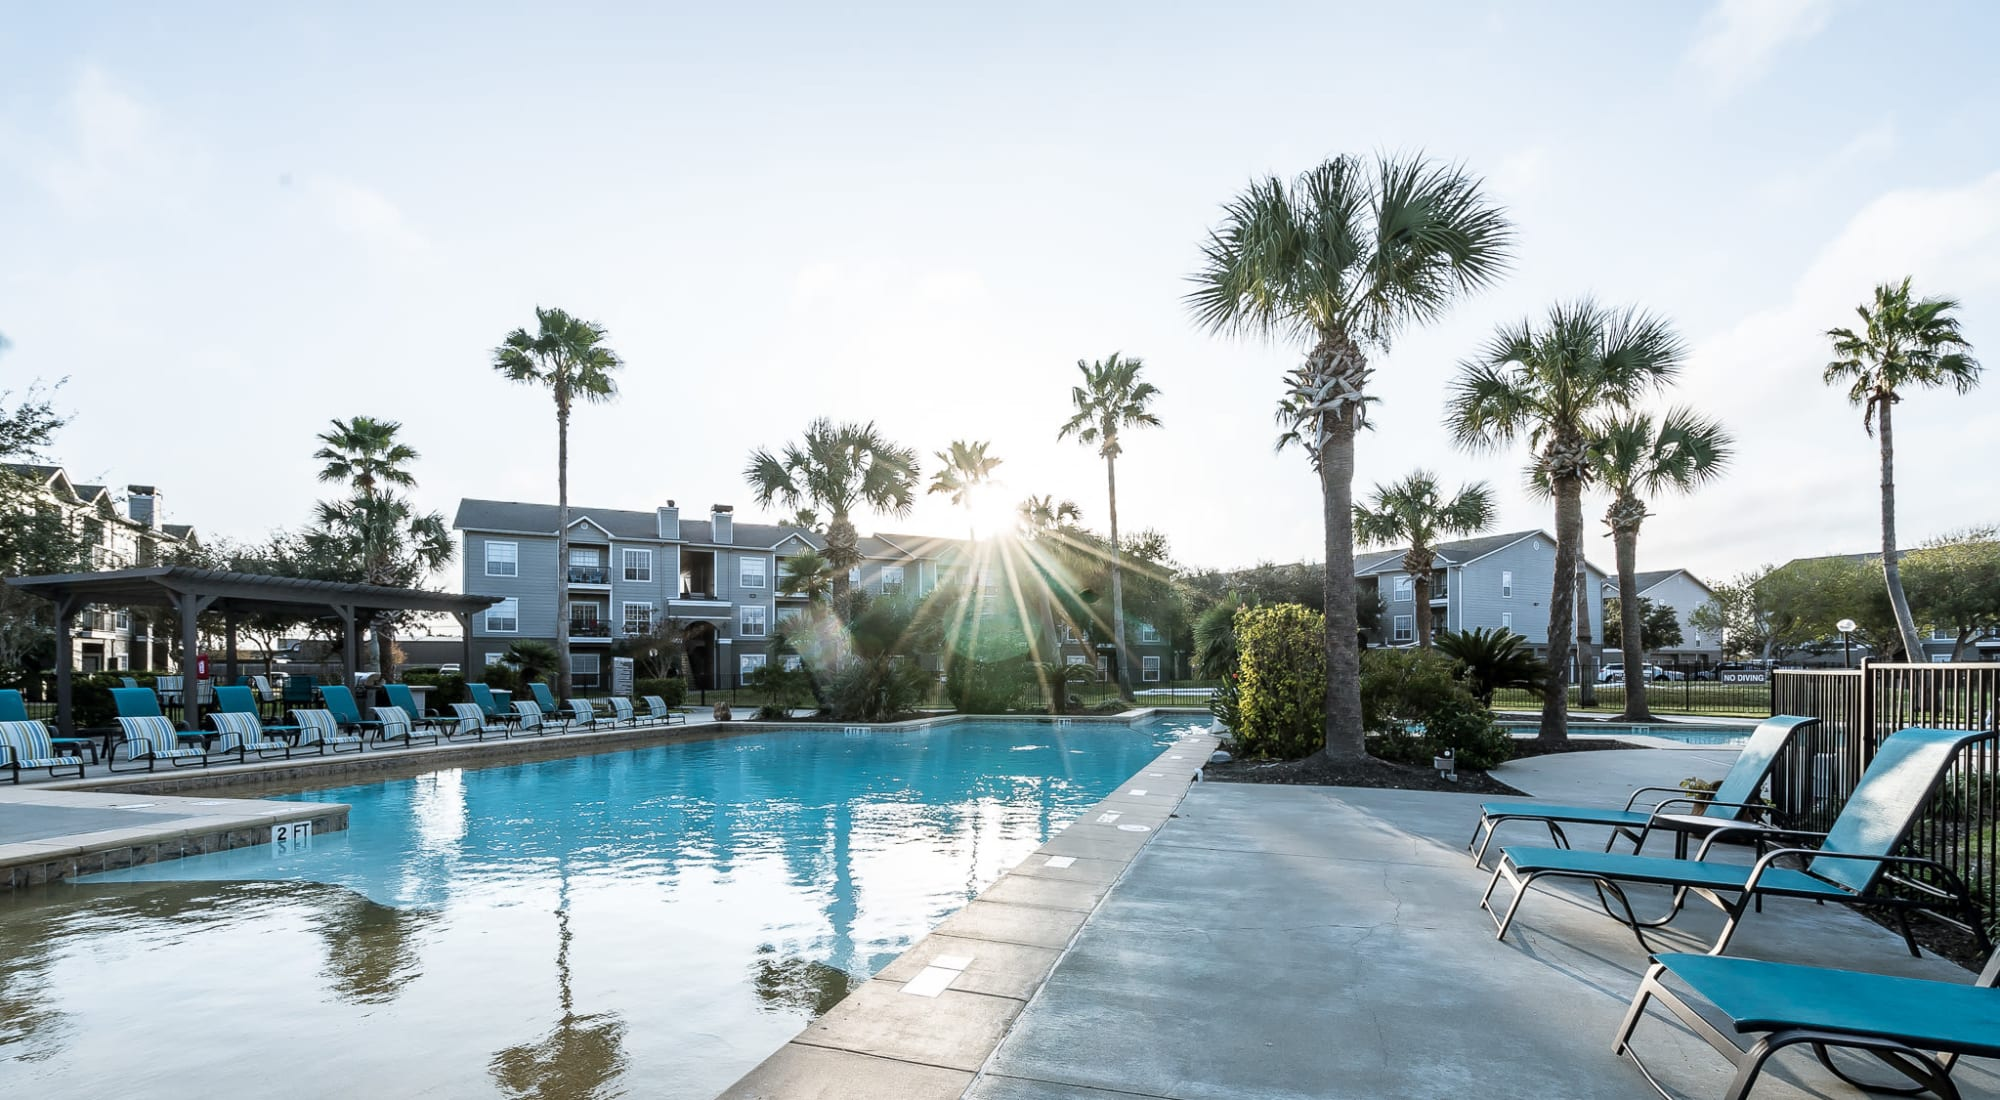 Swimming pool area on a beautiful morning at Azure Apartments in Corpus Christi, Texas